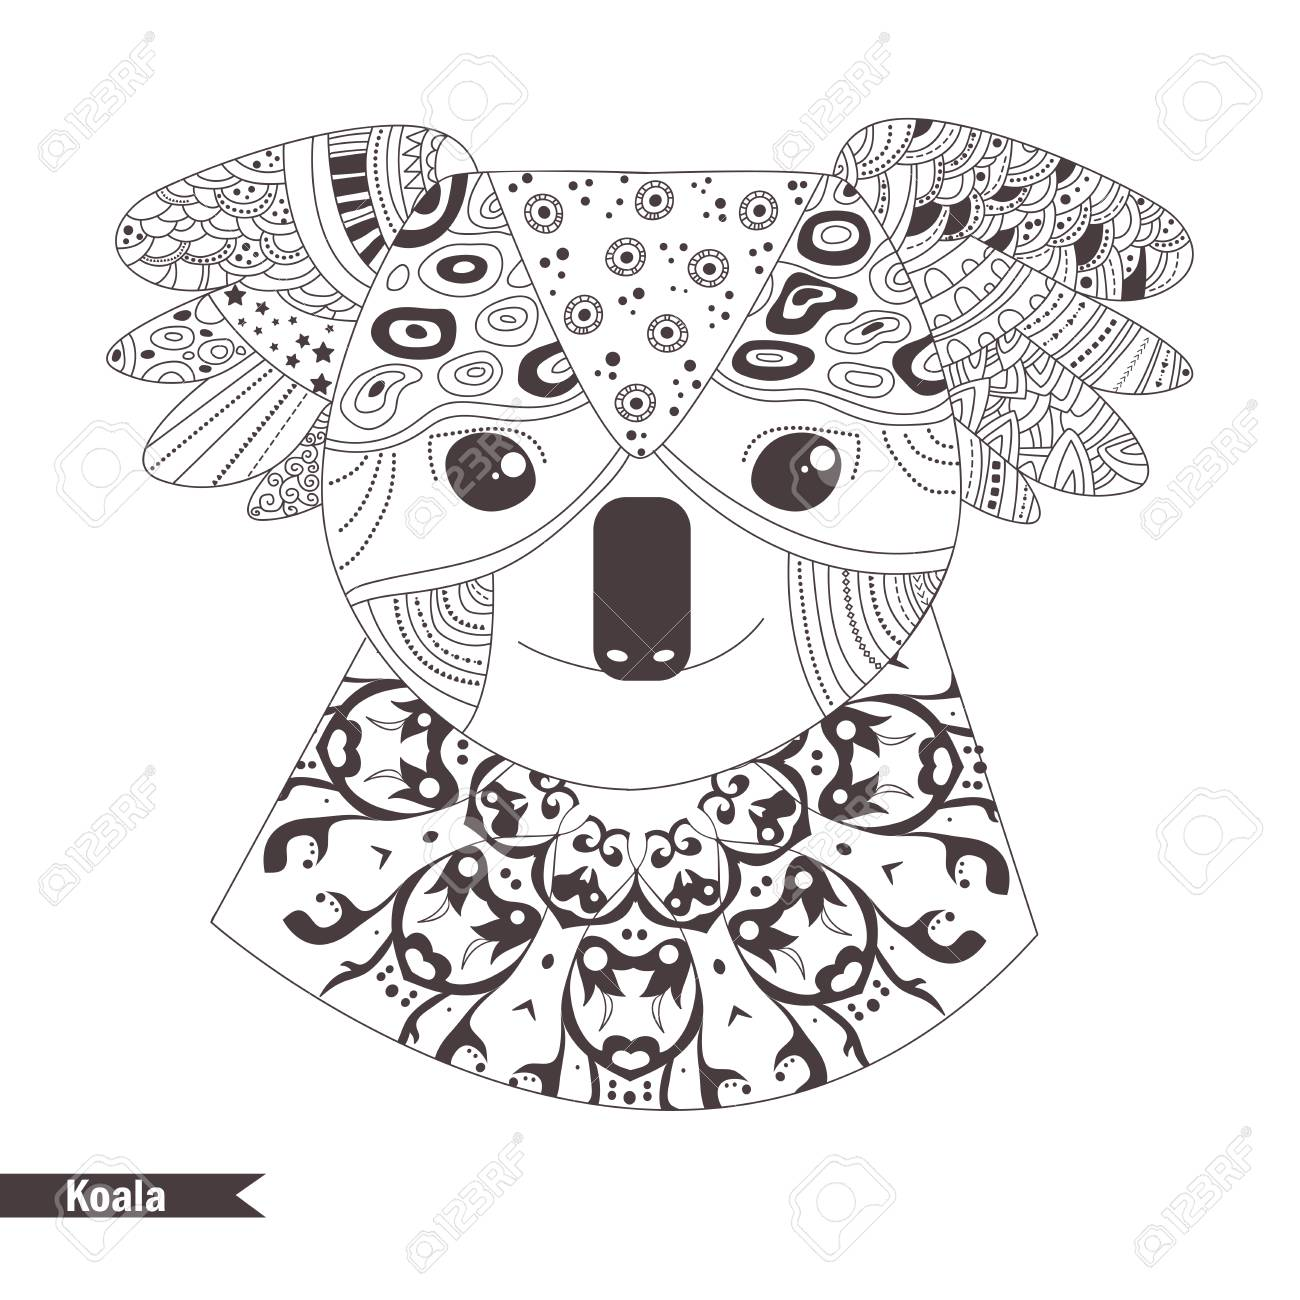 Koala Coloring Book For Adult Antistress Coloring Pages Hand